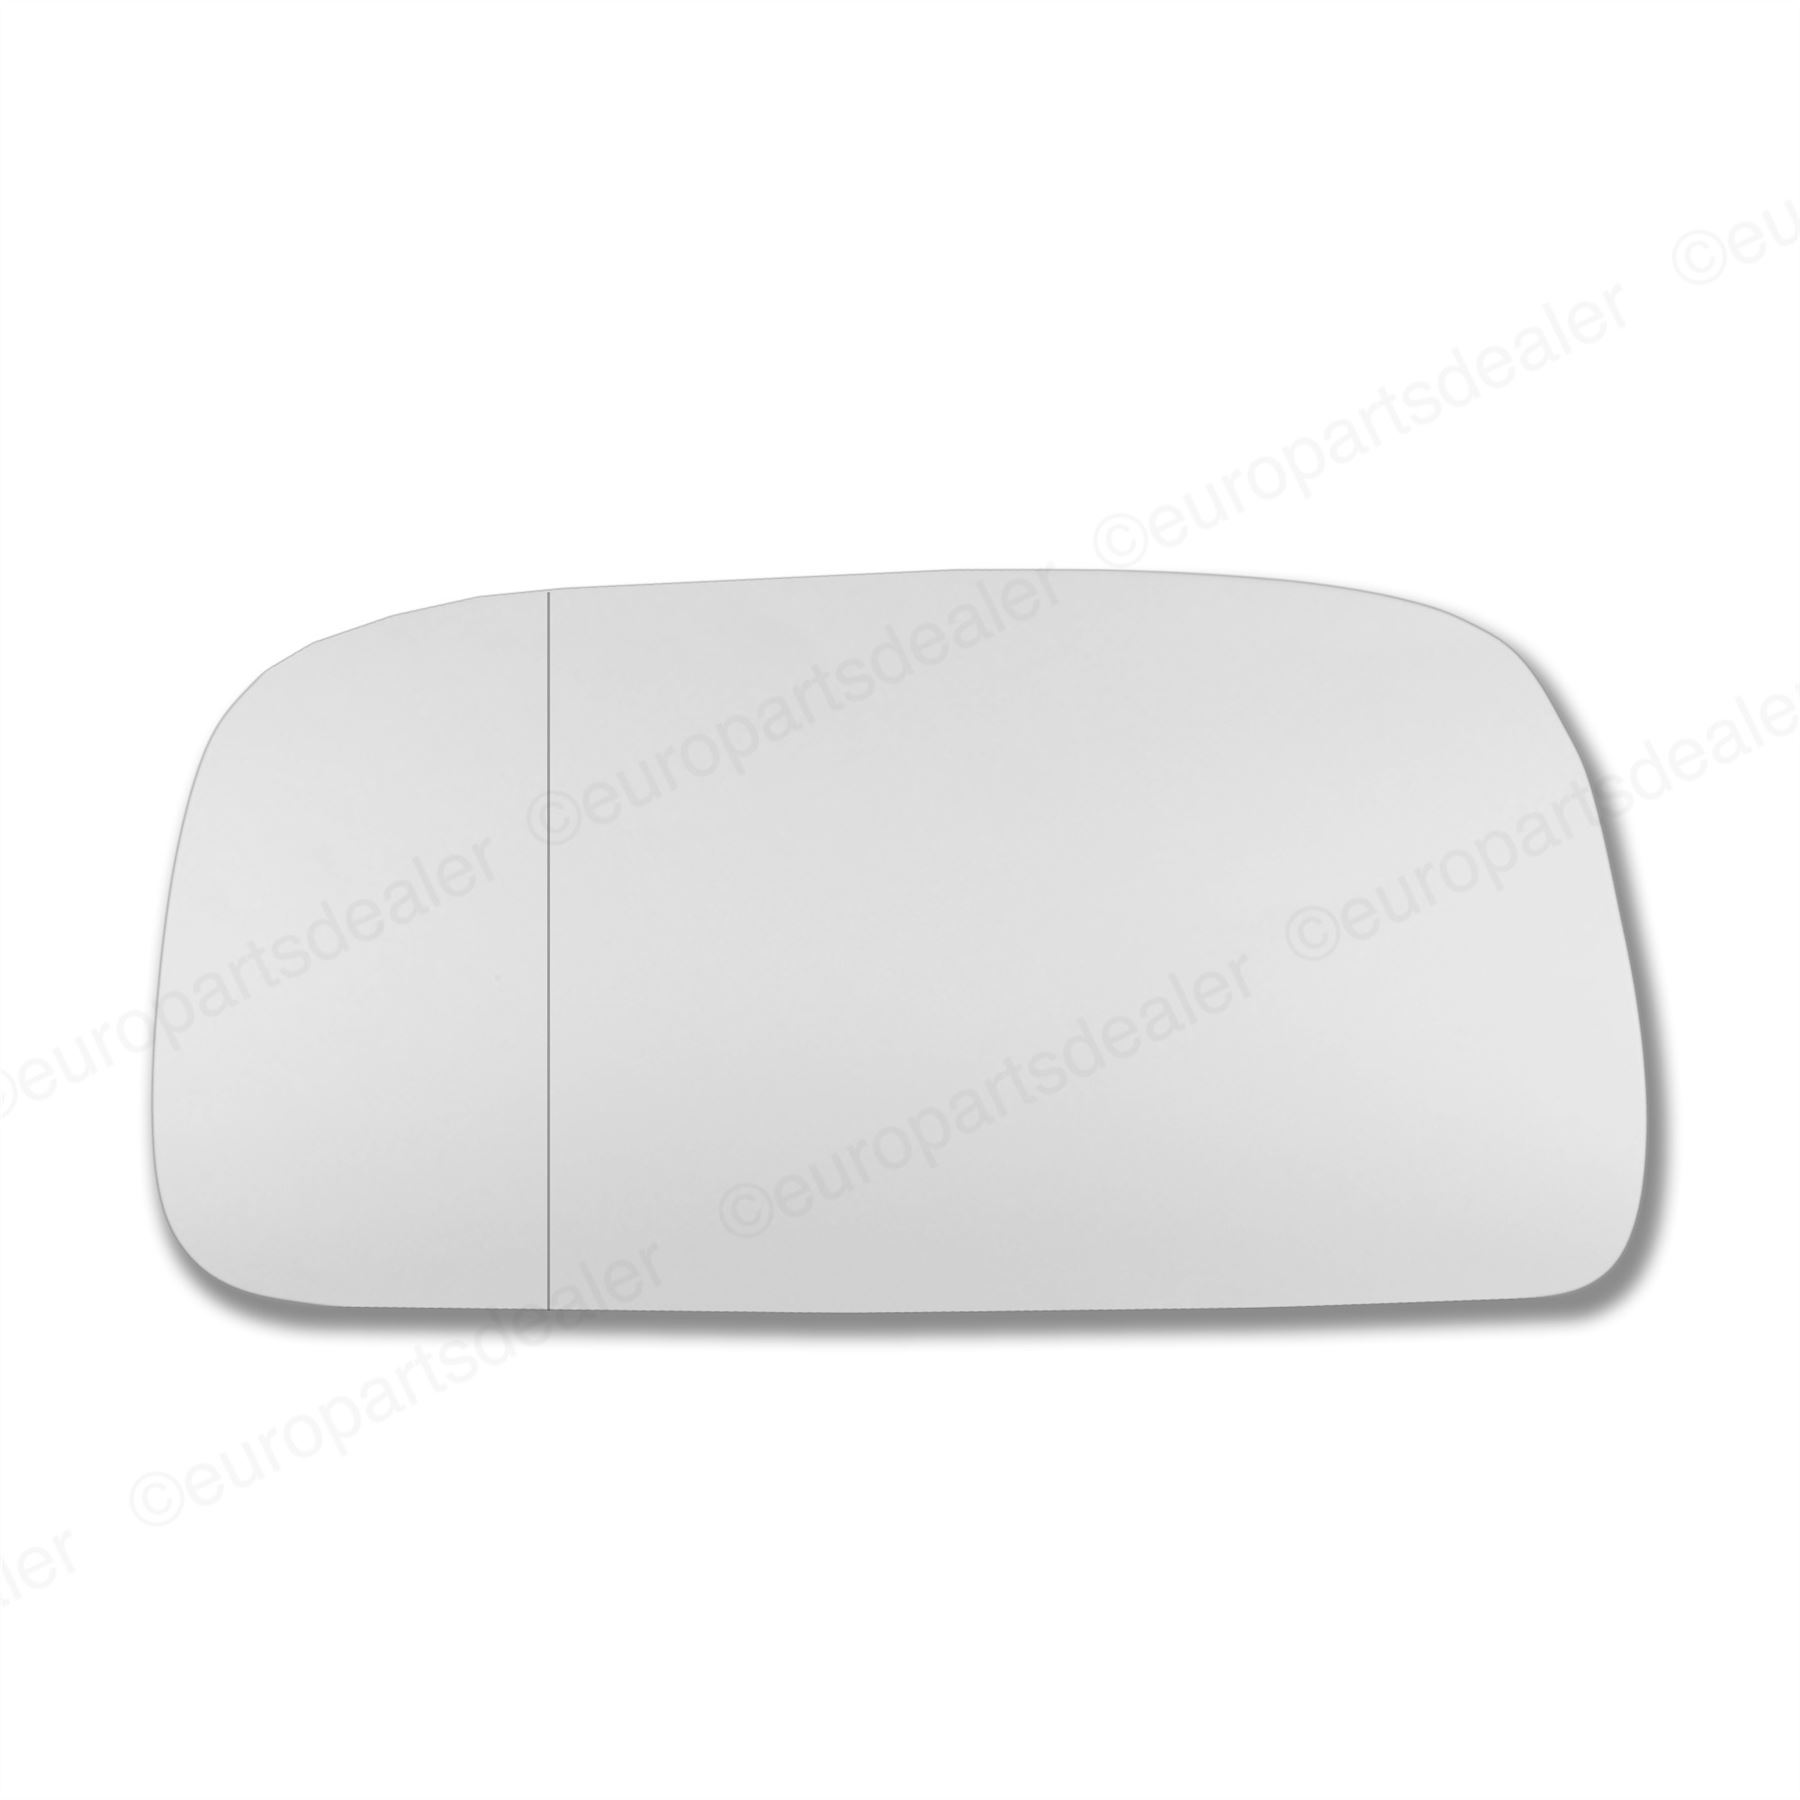 Right Driver Side WING DOOR MIRROR GLASS For Toyota Starlet Glanza 1996-1999